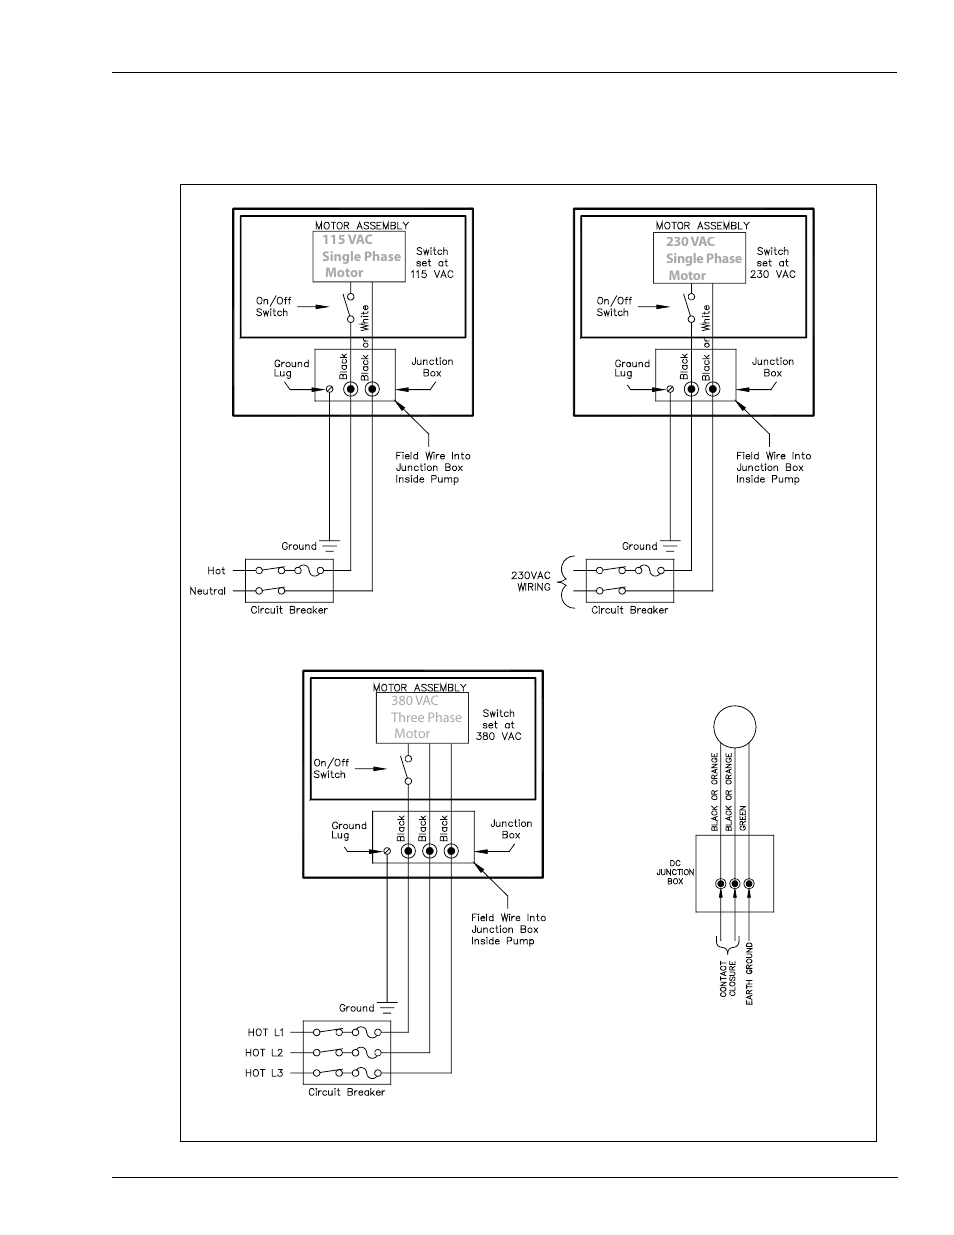 wiring diagram gasboy 580 series user manual page 21 50Gasboy Pump Wiring Diagram #4